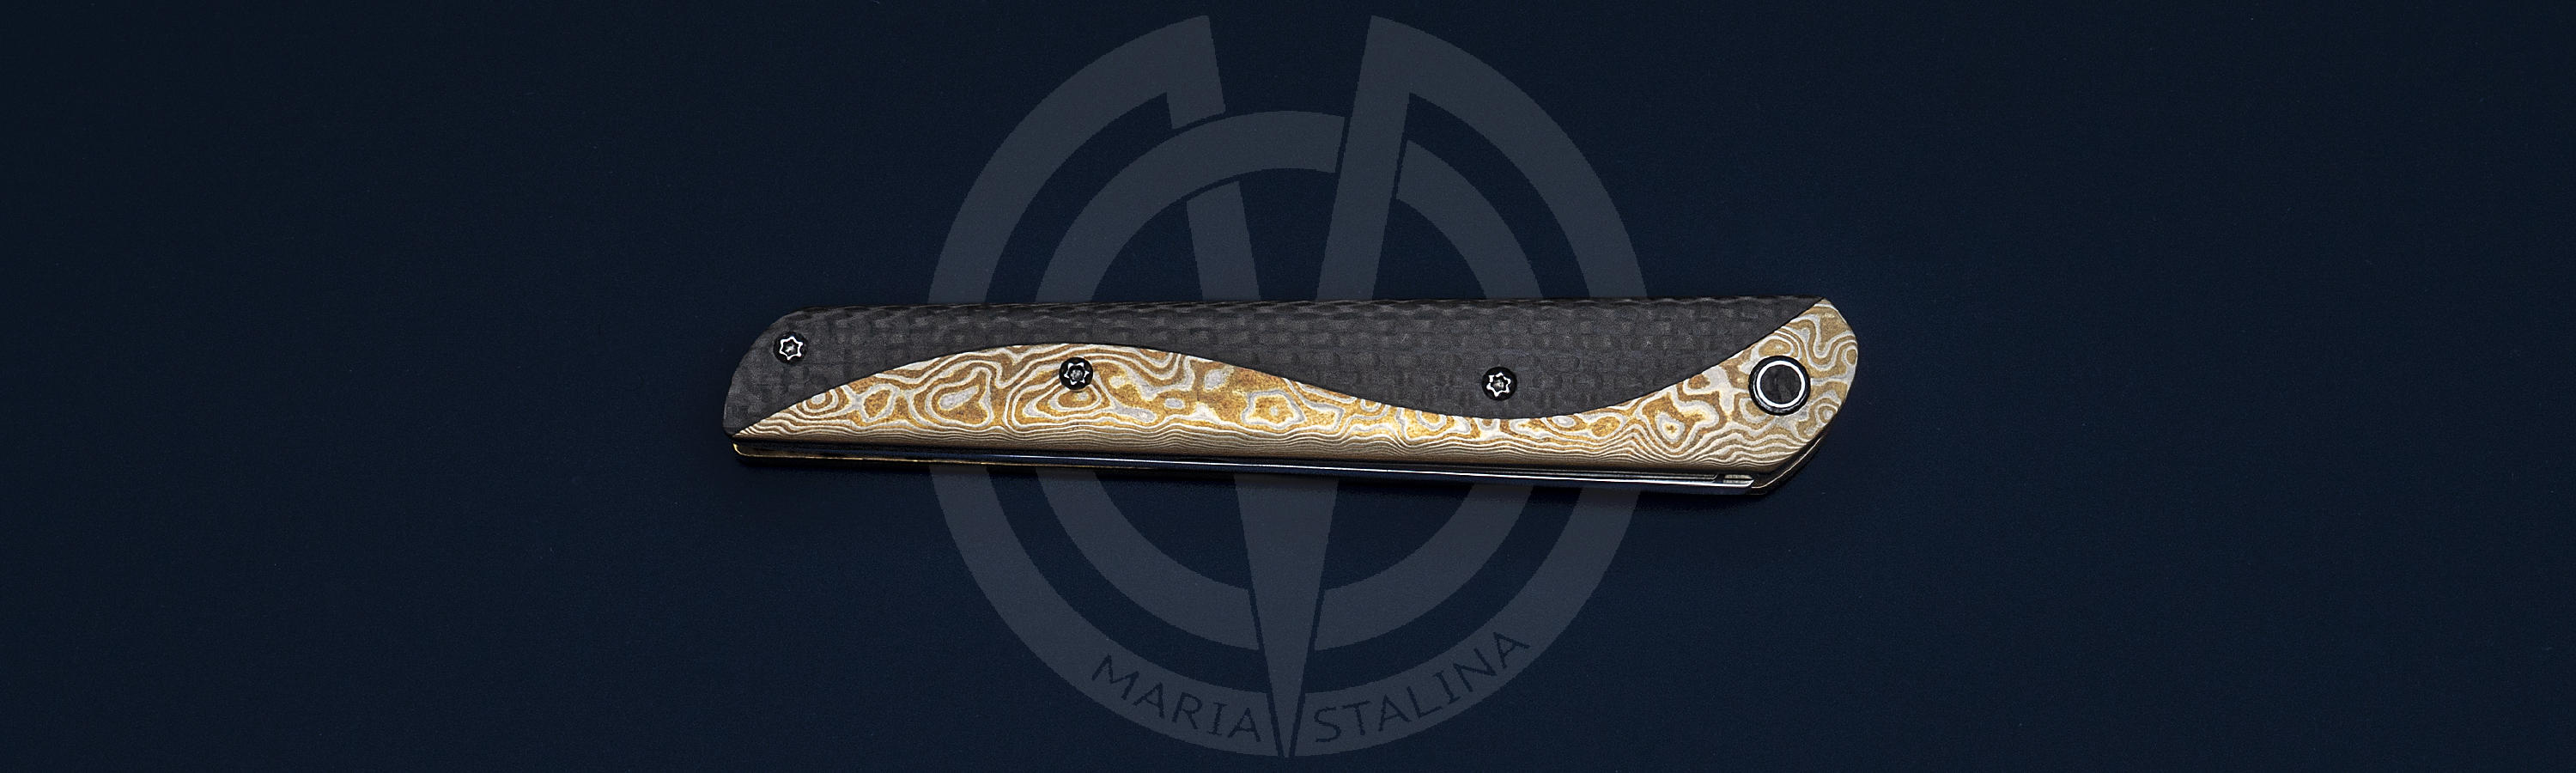 Mokume and Carbon fiber of the handle